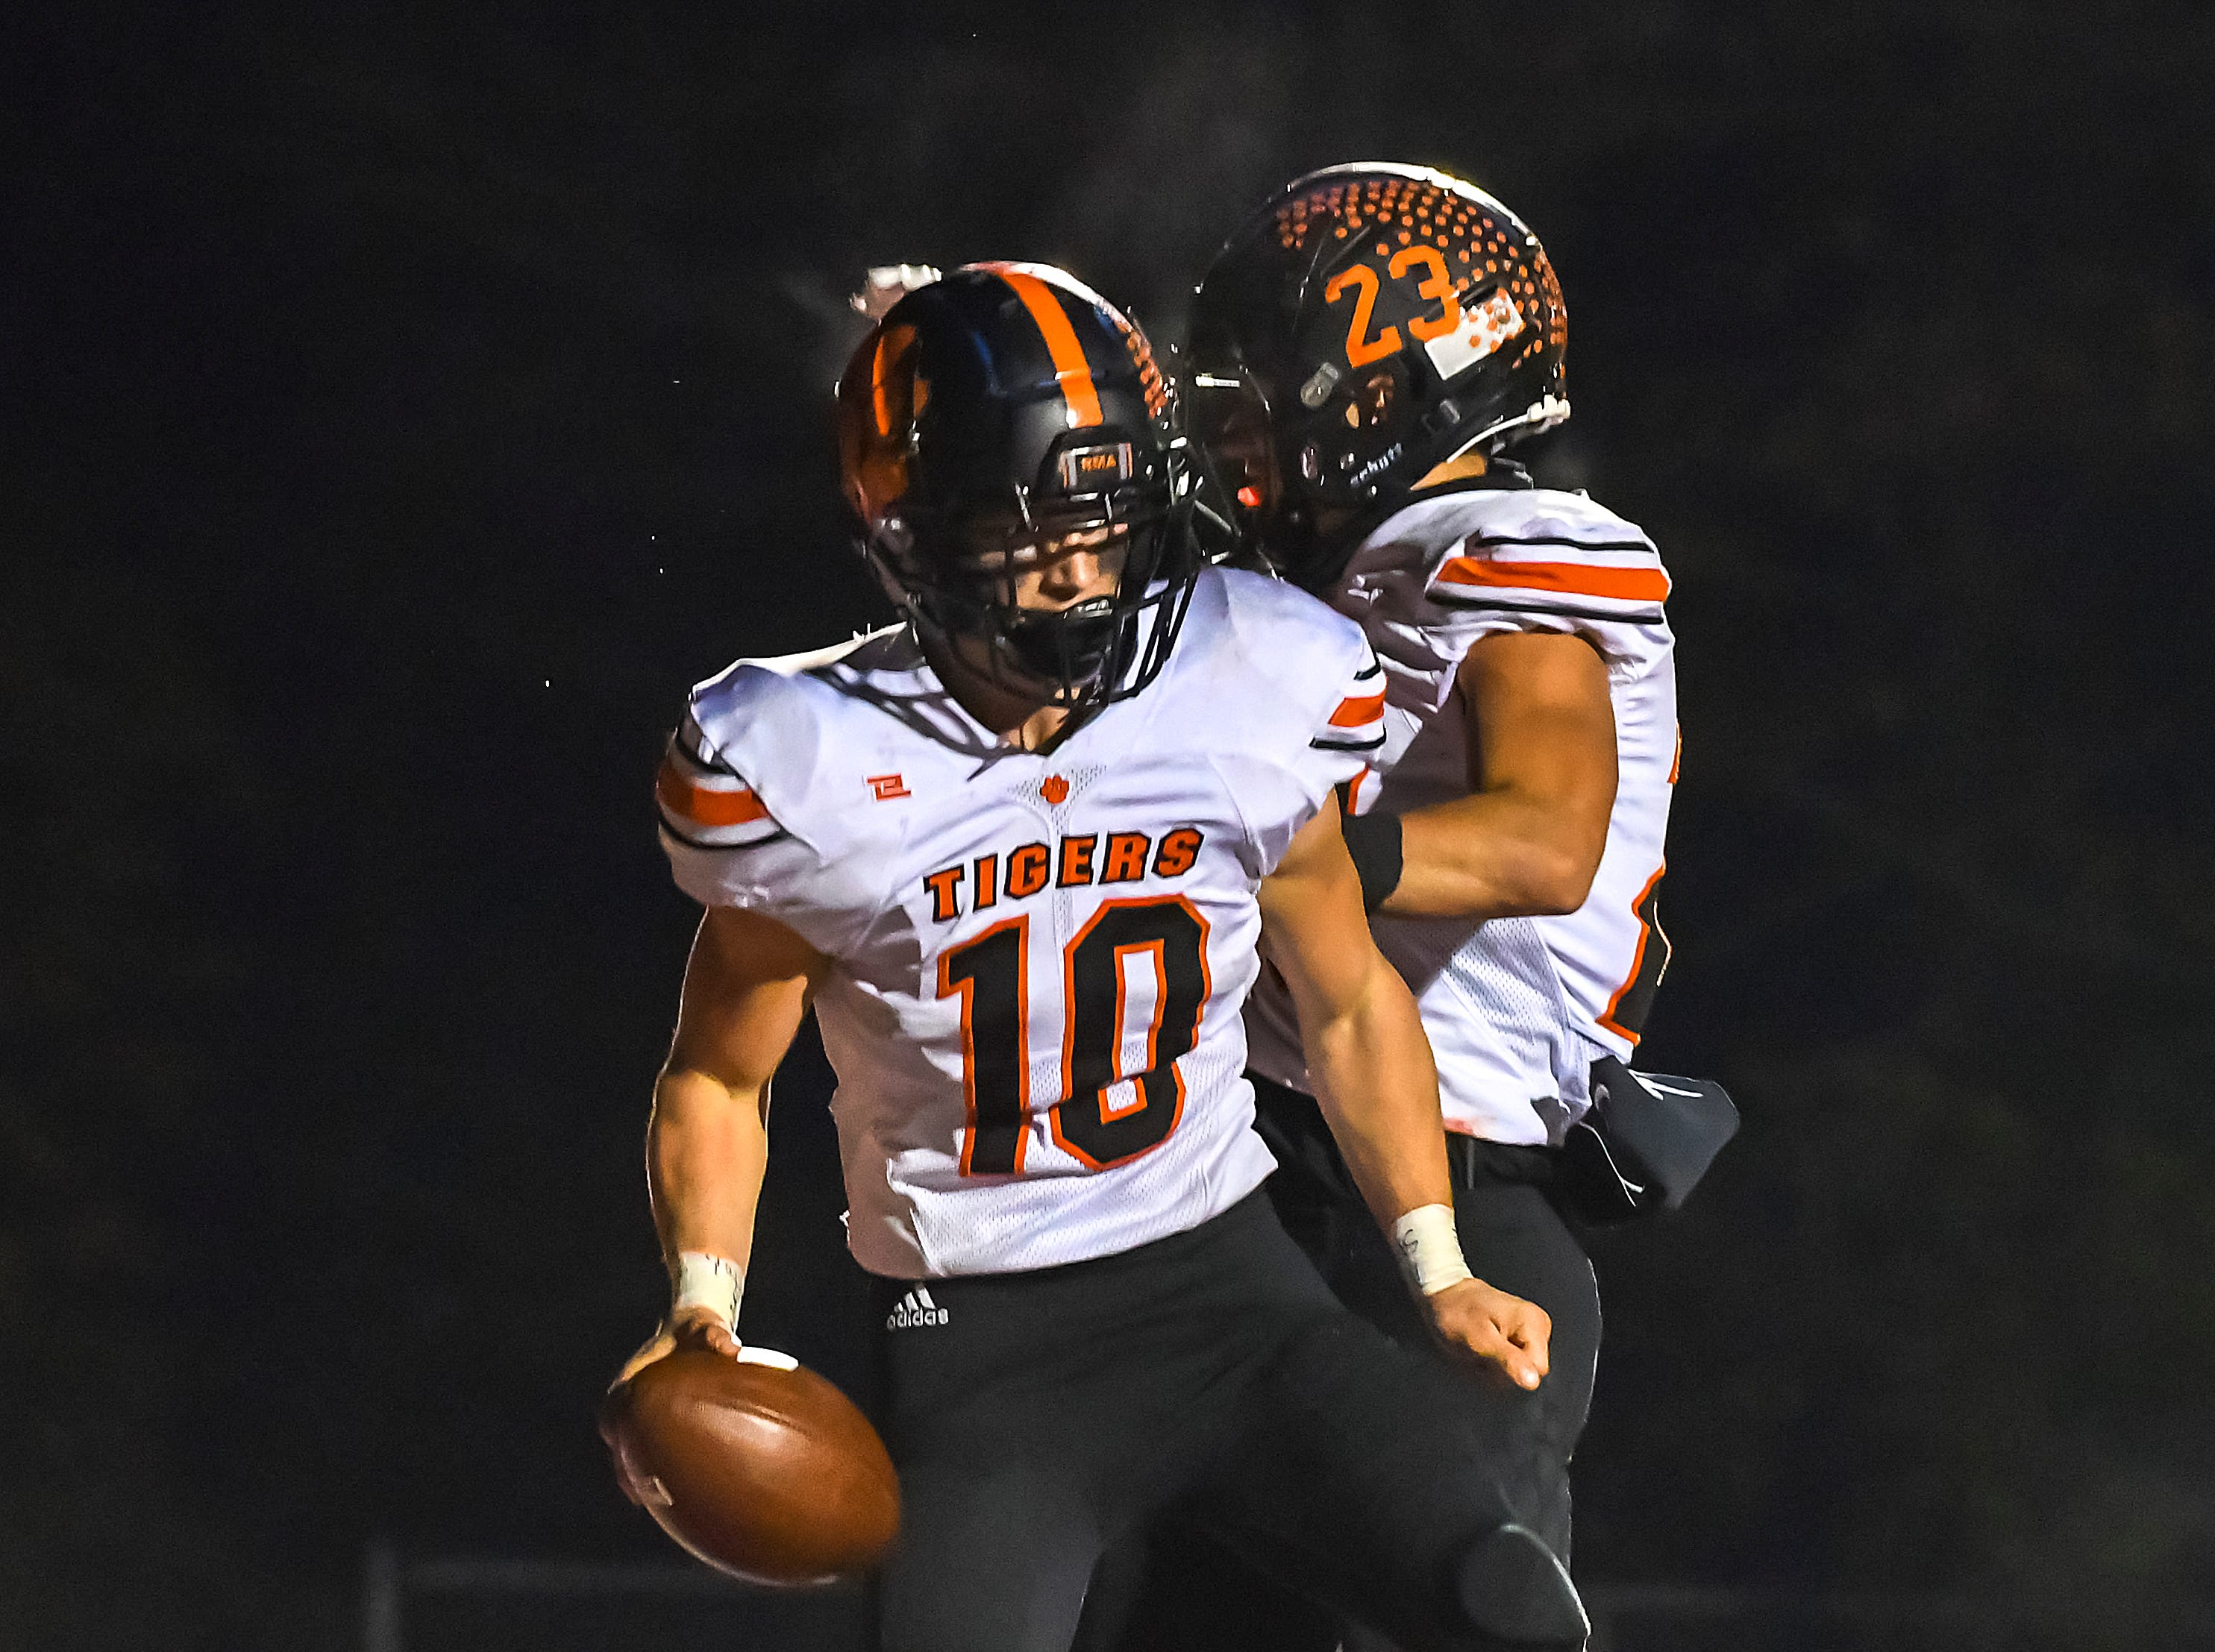 Payton Shoemaker (10) and Easton Wolf of Waverly celebrate after a touchdown against Indian Hill in the OHSAA D4 Region 16 Playoffs at Indian Hill High School, Saturday, Nov. 3, 2018